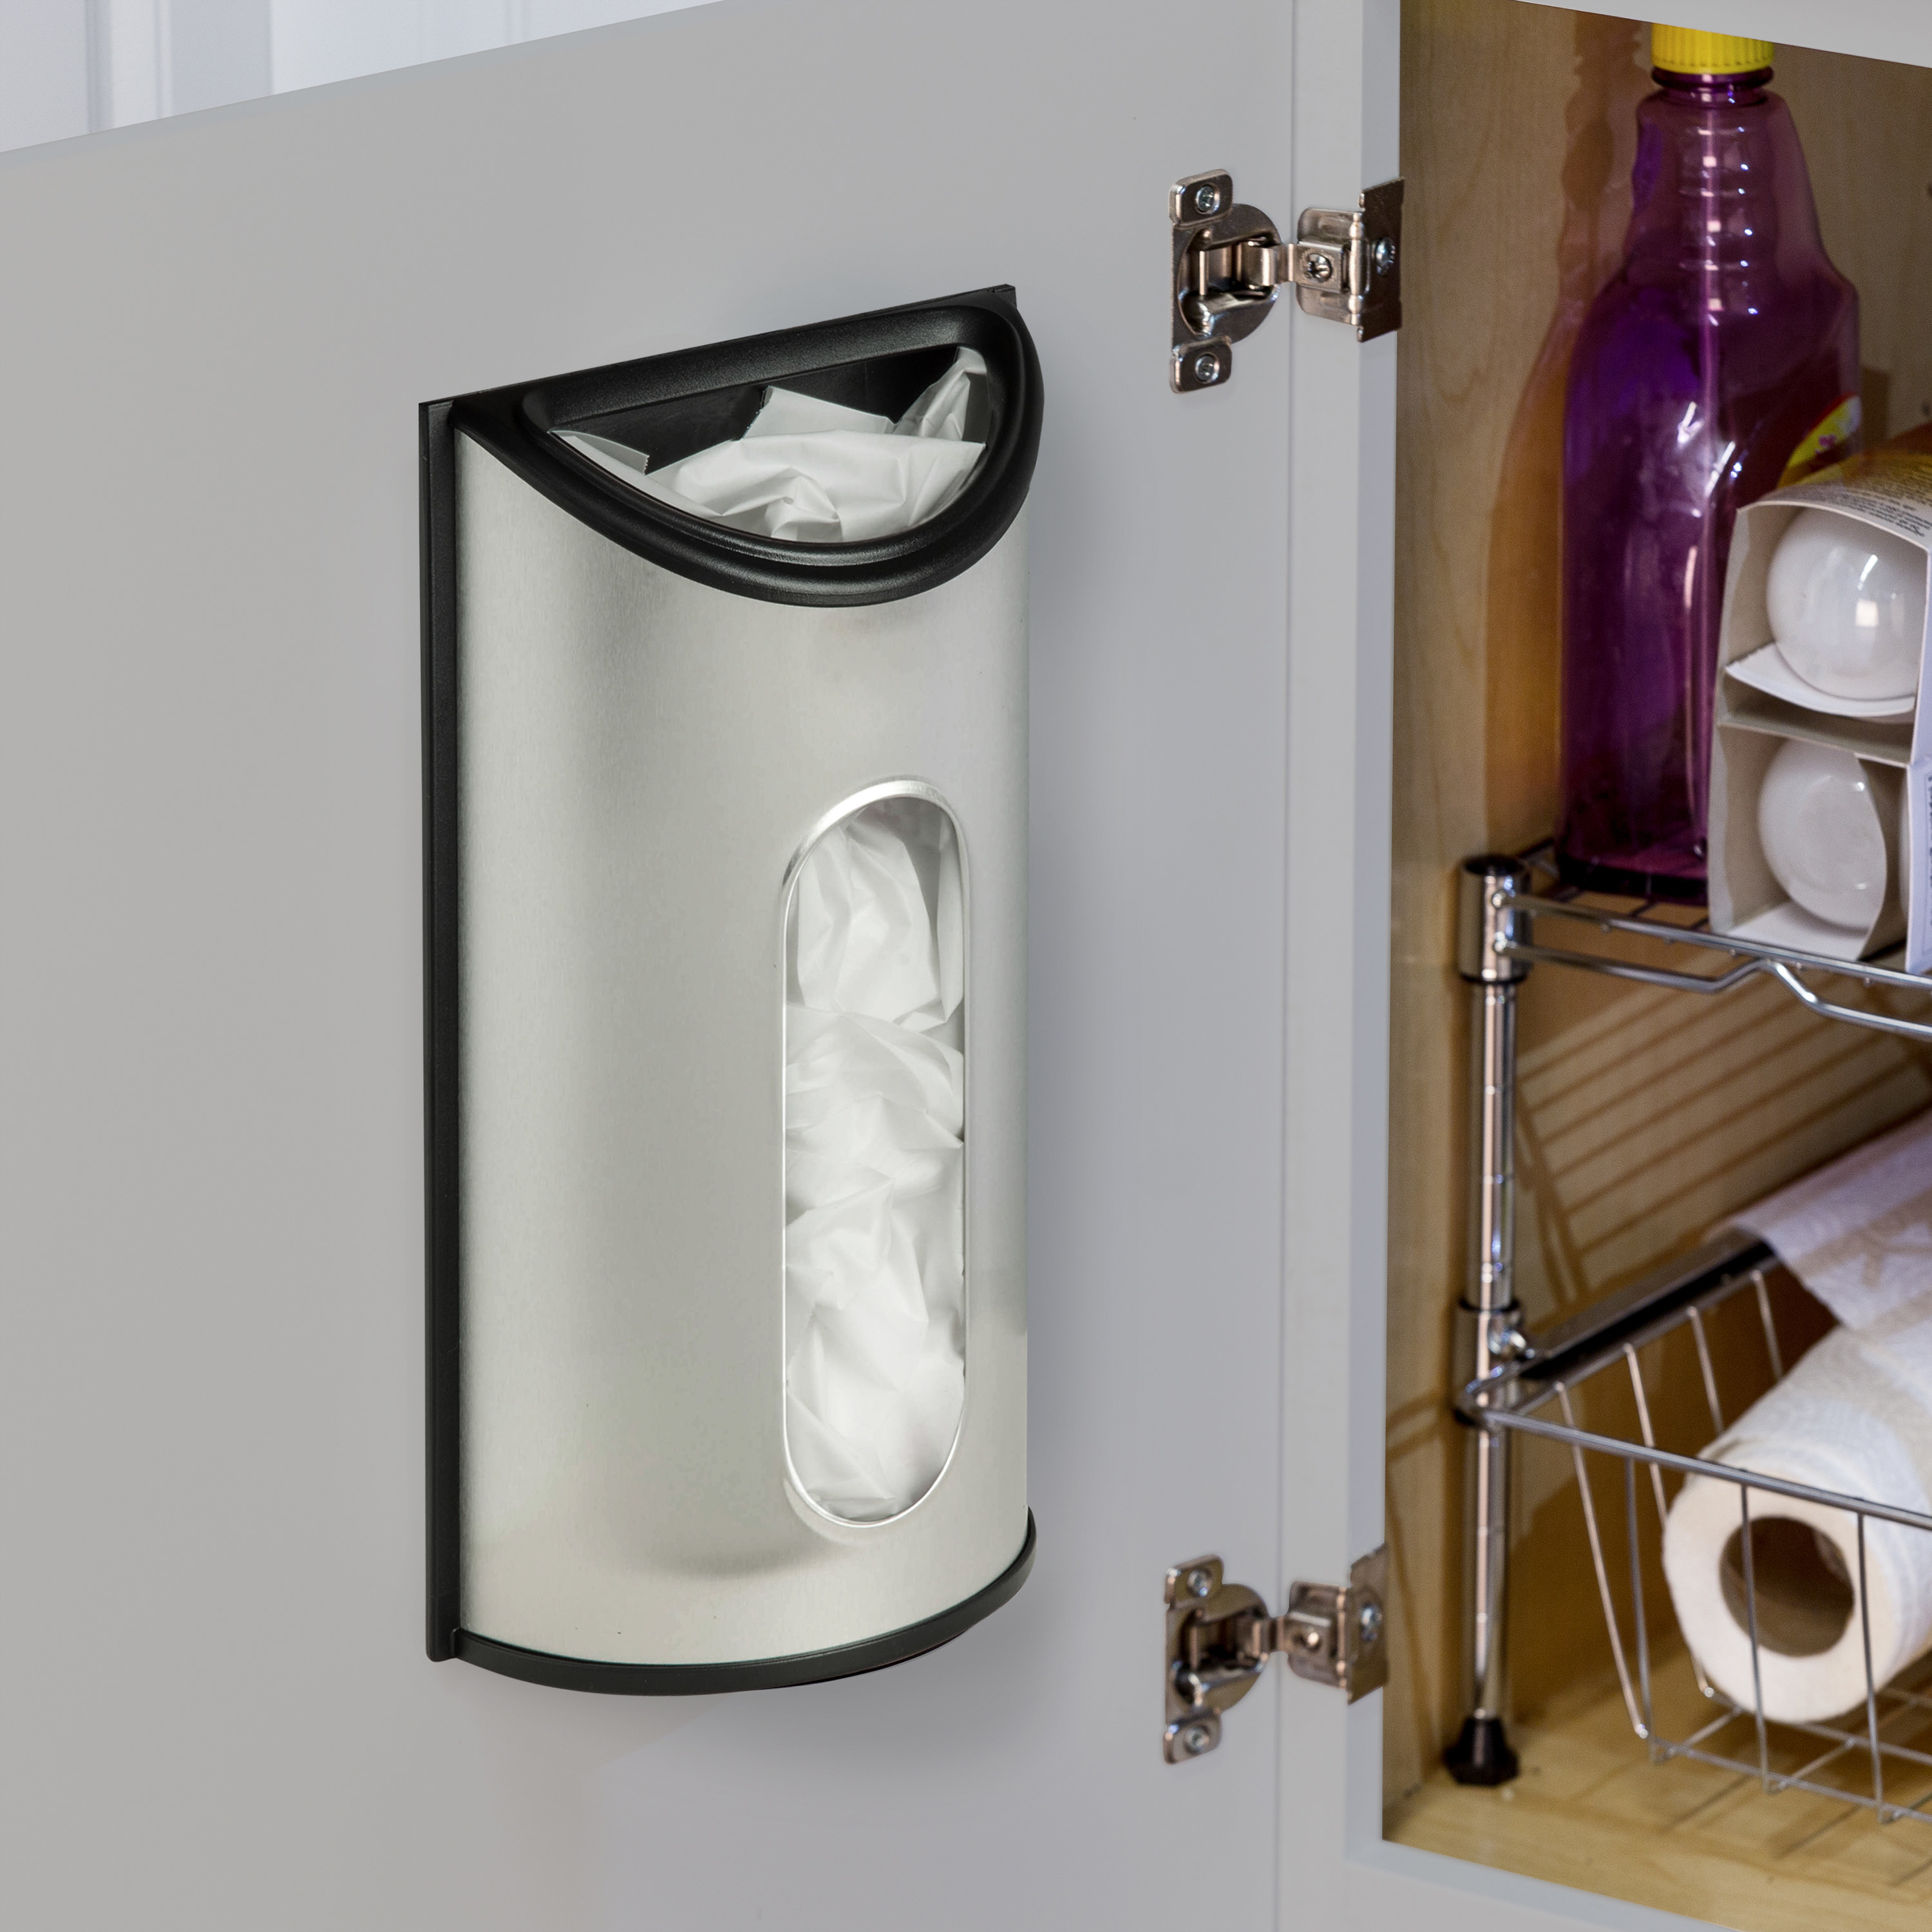 stainless steel plastic bag dispenser mounted on the inside of a cabinet door